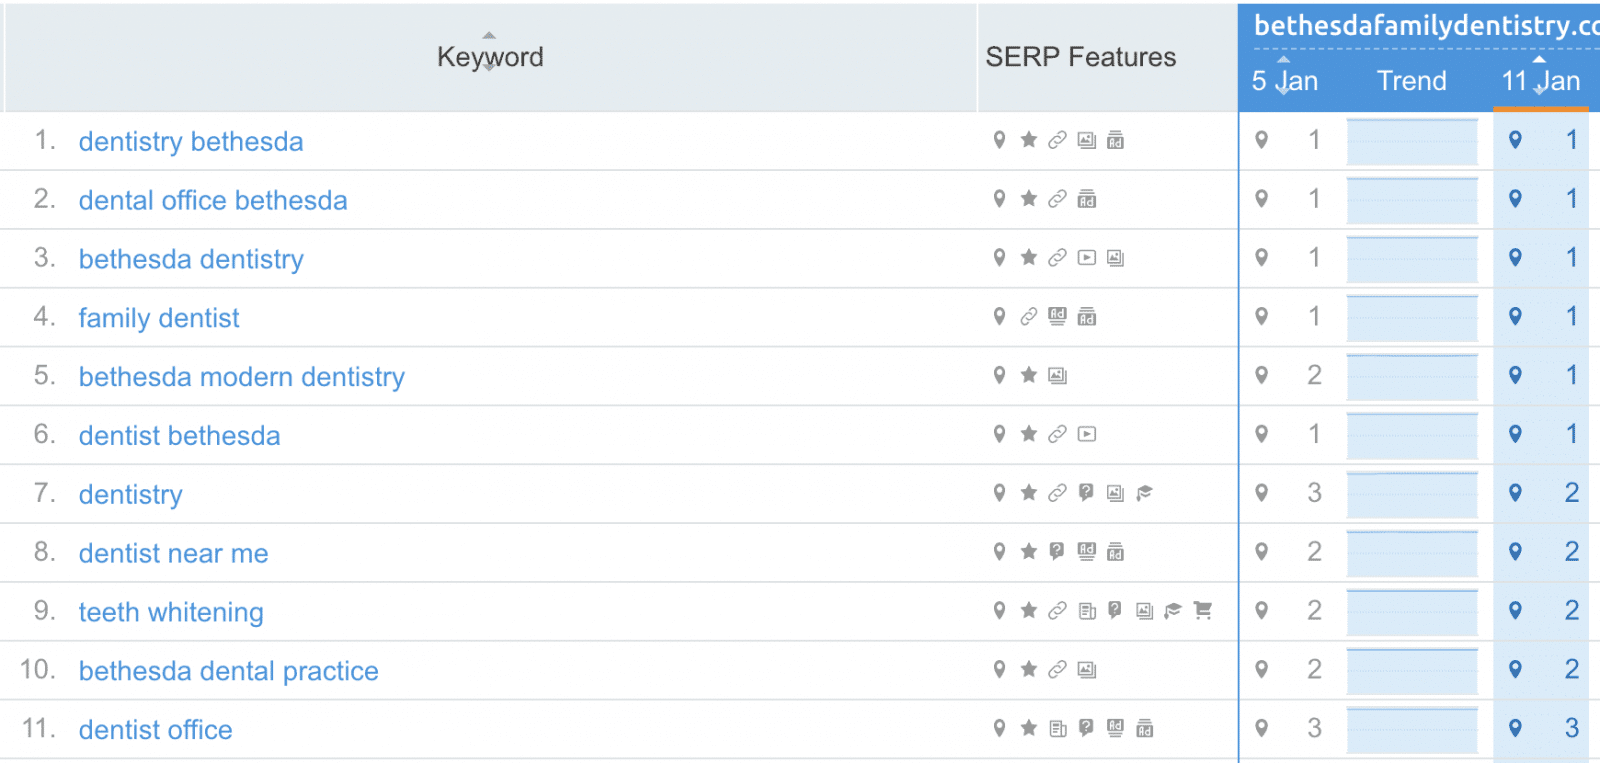 o360 SEO client example showing top 10 ranking